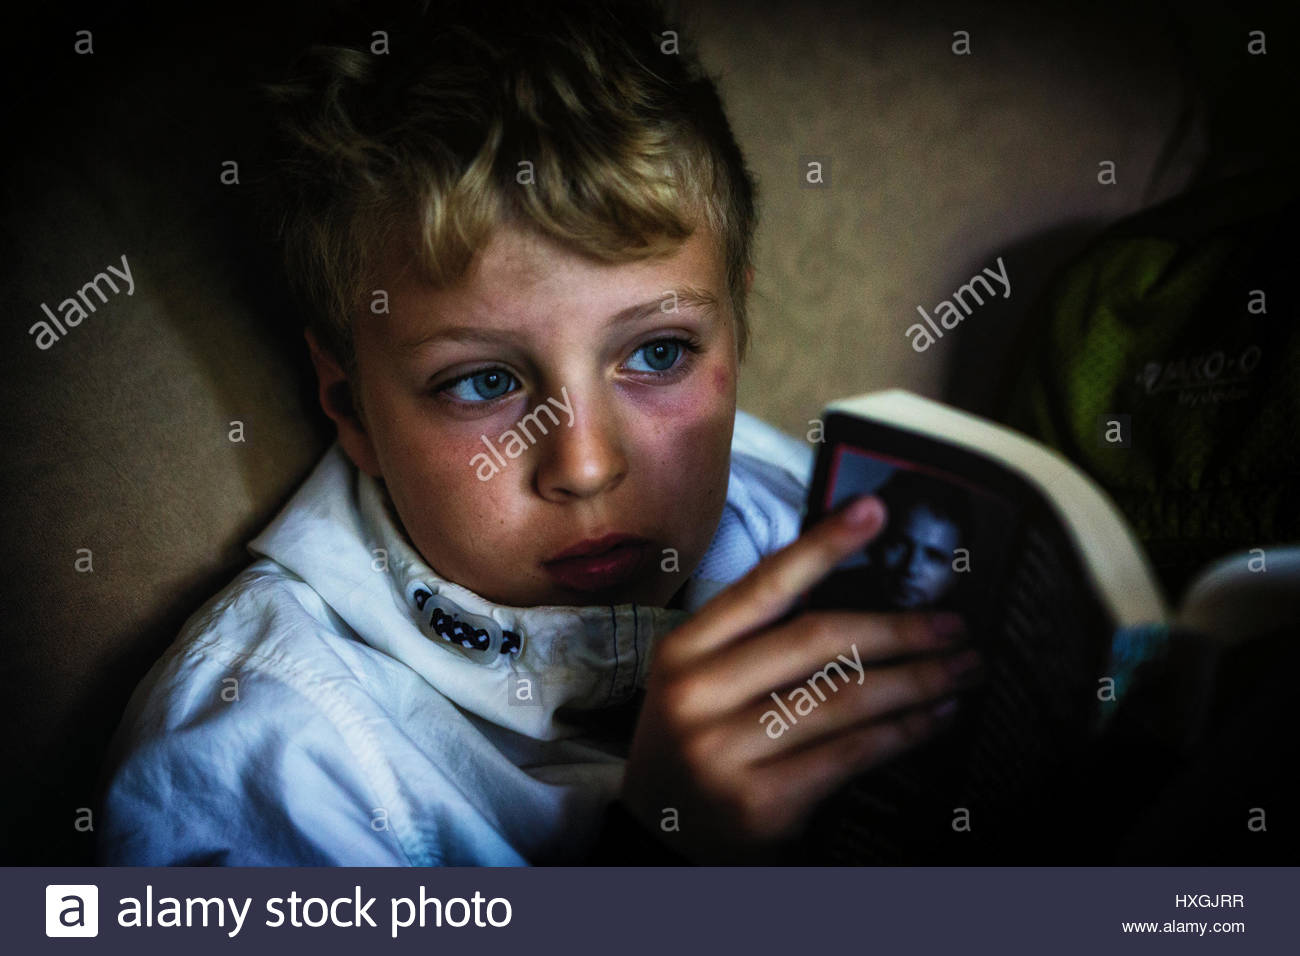 Young boy reading a book with a look of contemplation in his face - Stock Image